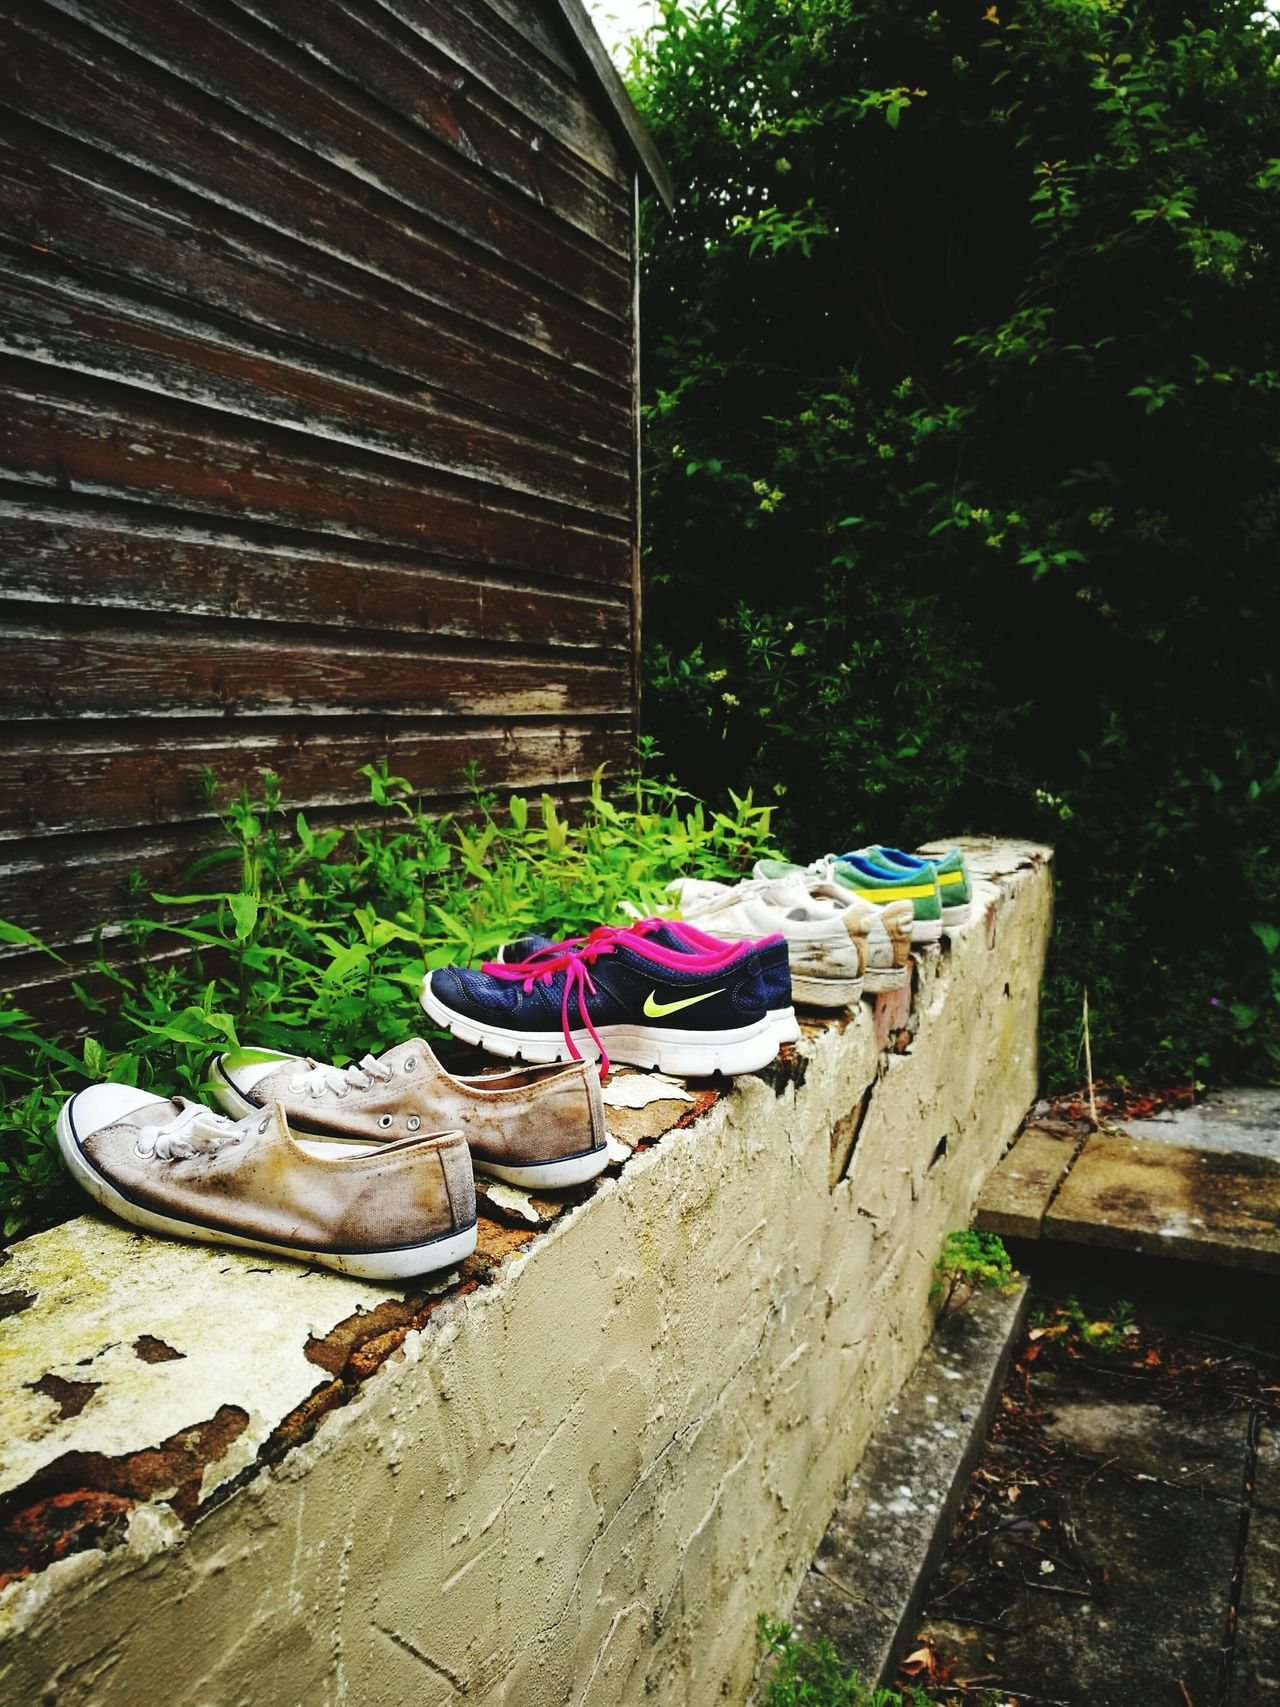 Shoesonawall Shoes On A Wall Shoesinaline Shoes Shoes In A Row Dirty Shoes Dirtyshoes Trainers Sneakers Wall Stone Wall Greenery Trees Garden Lotsosshoes Drying Shoes Shoes Drying On A Wall Shoesdryingonawall Rowofshoes Row Of Shoes Fresh On EyeEmAfterwalking After Walking Muddyshoes Muddy Shoes